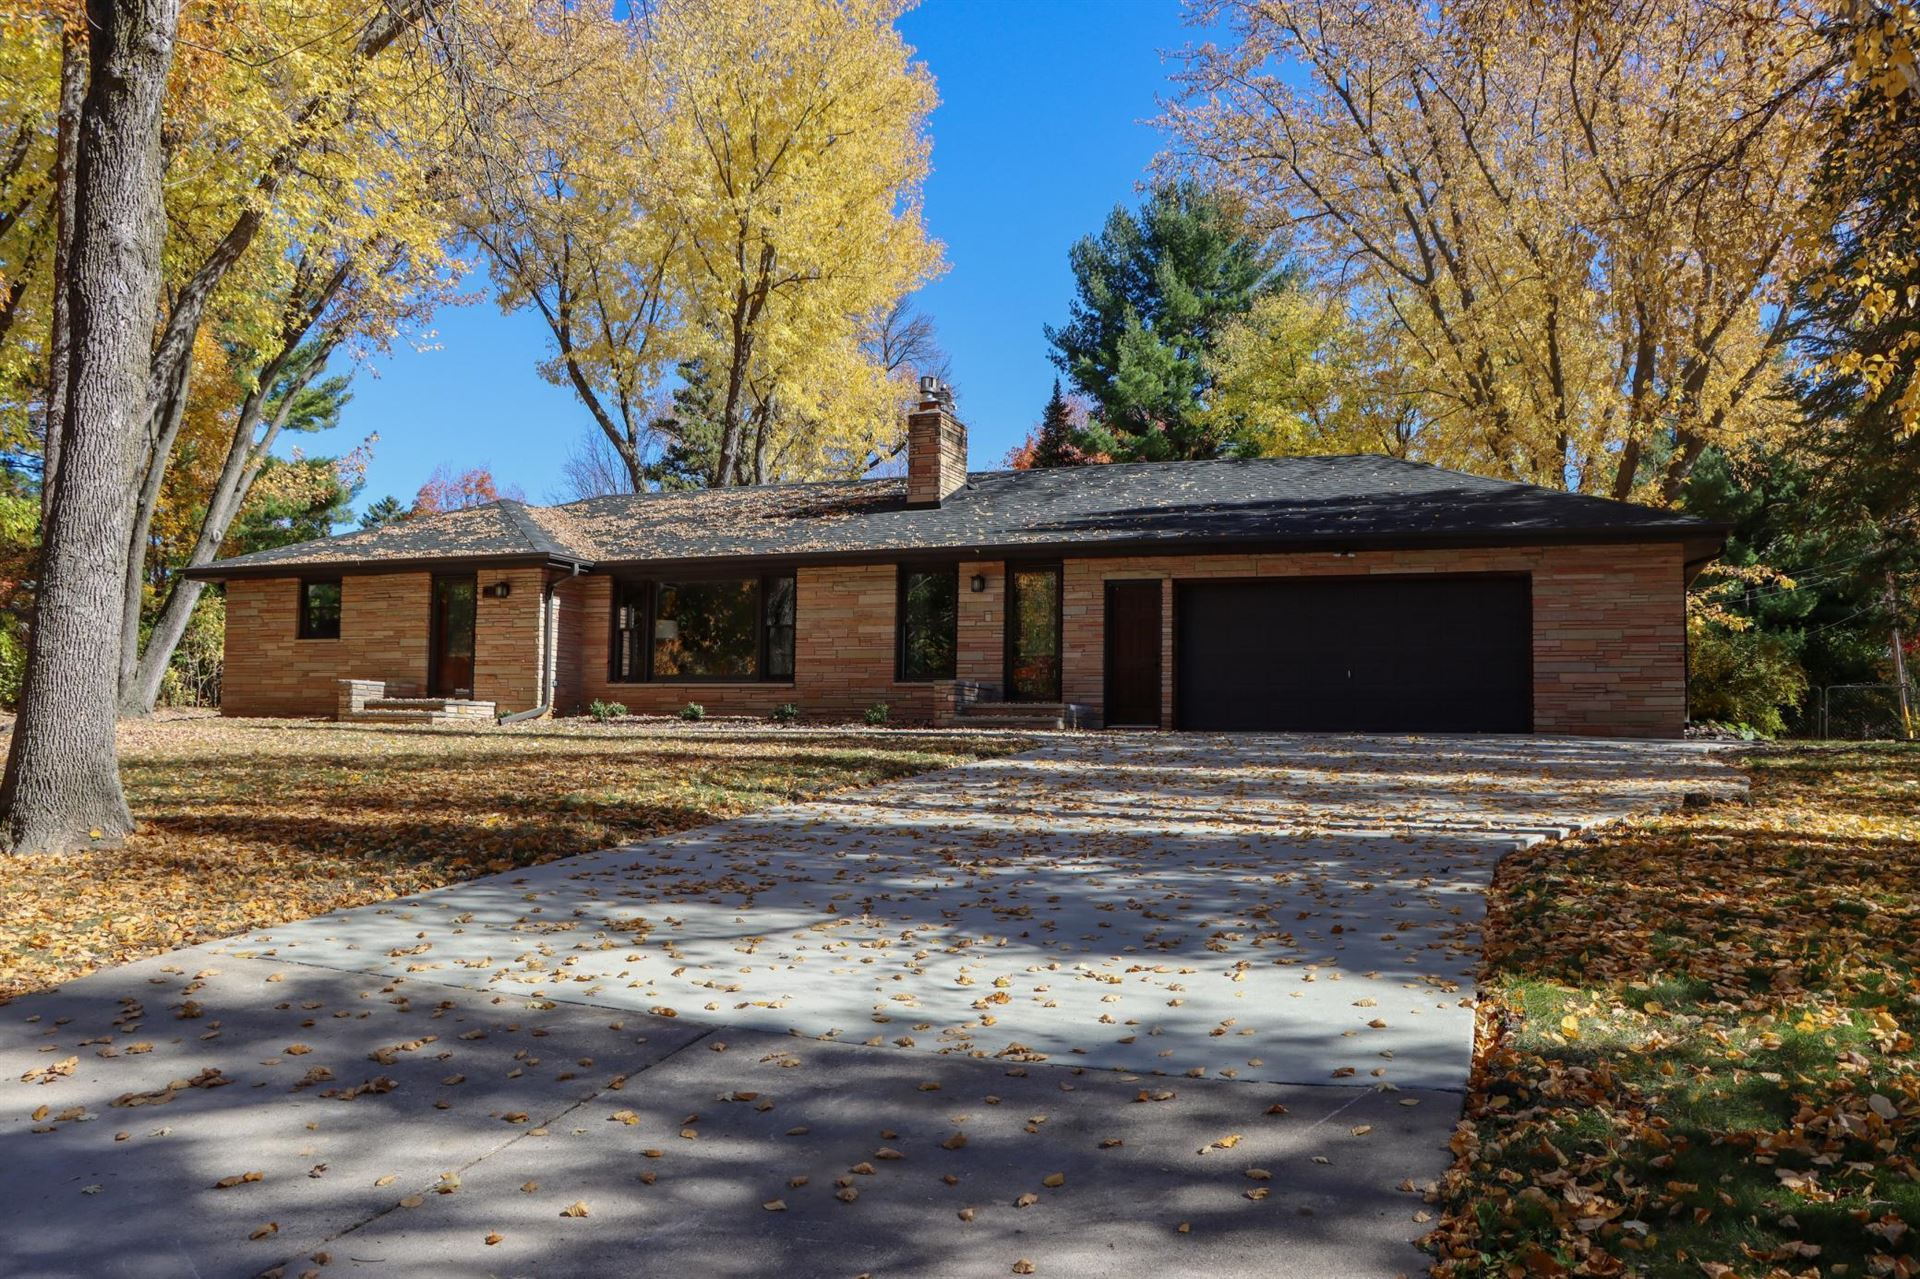 410 Deerwood Lane N, Plymouth, MN 55441 - MLS#: 5547730